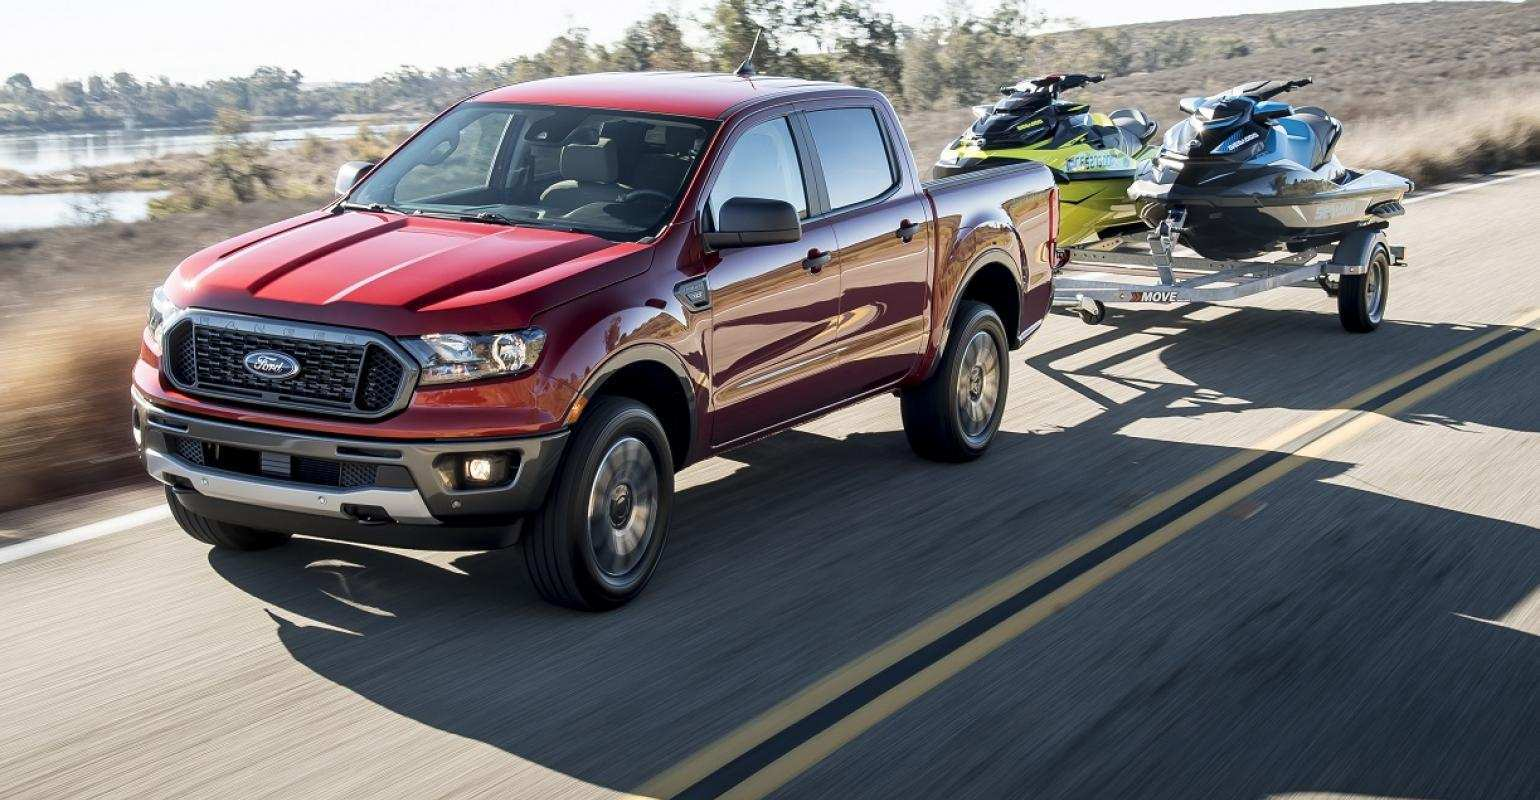 62 All New 2019 Ford Ranger 2 Door Release Date by 2019 Ford Ranger 2 Door